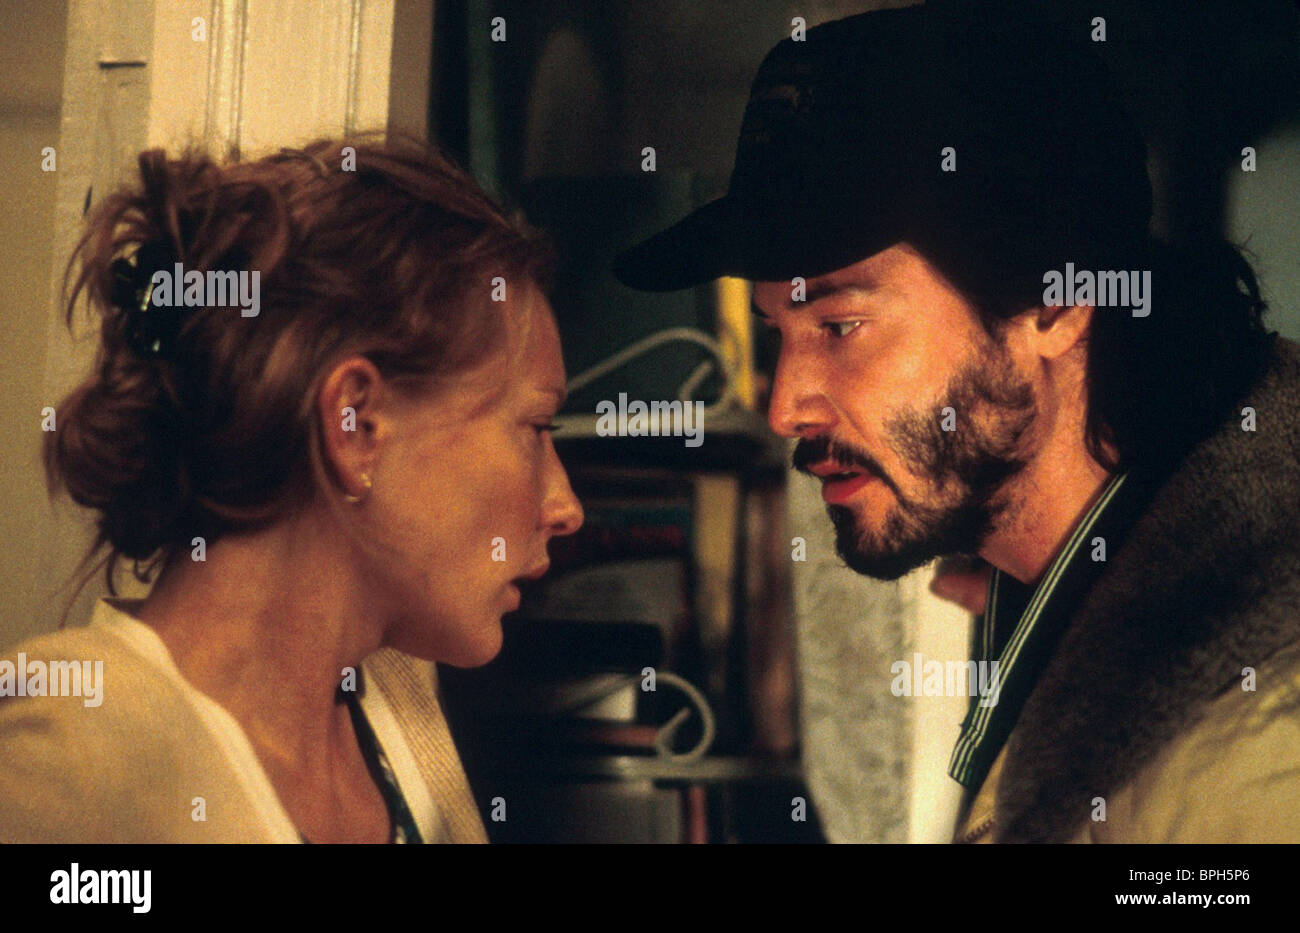 CATE BLANCHETT & KEANU REEVES THE GIFT (2000 Stock Photo, Royalty ...